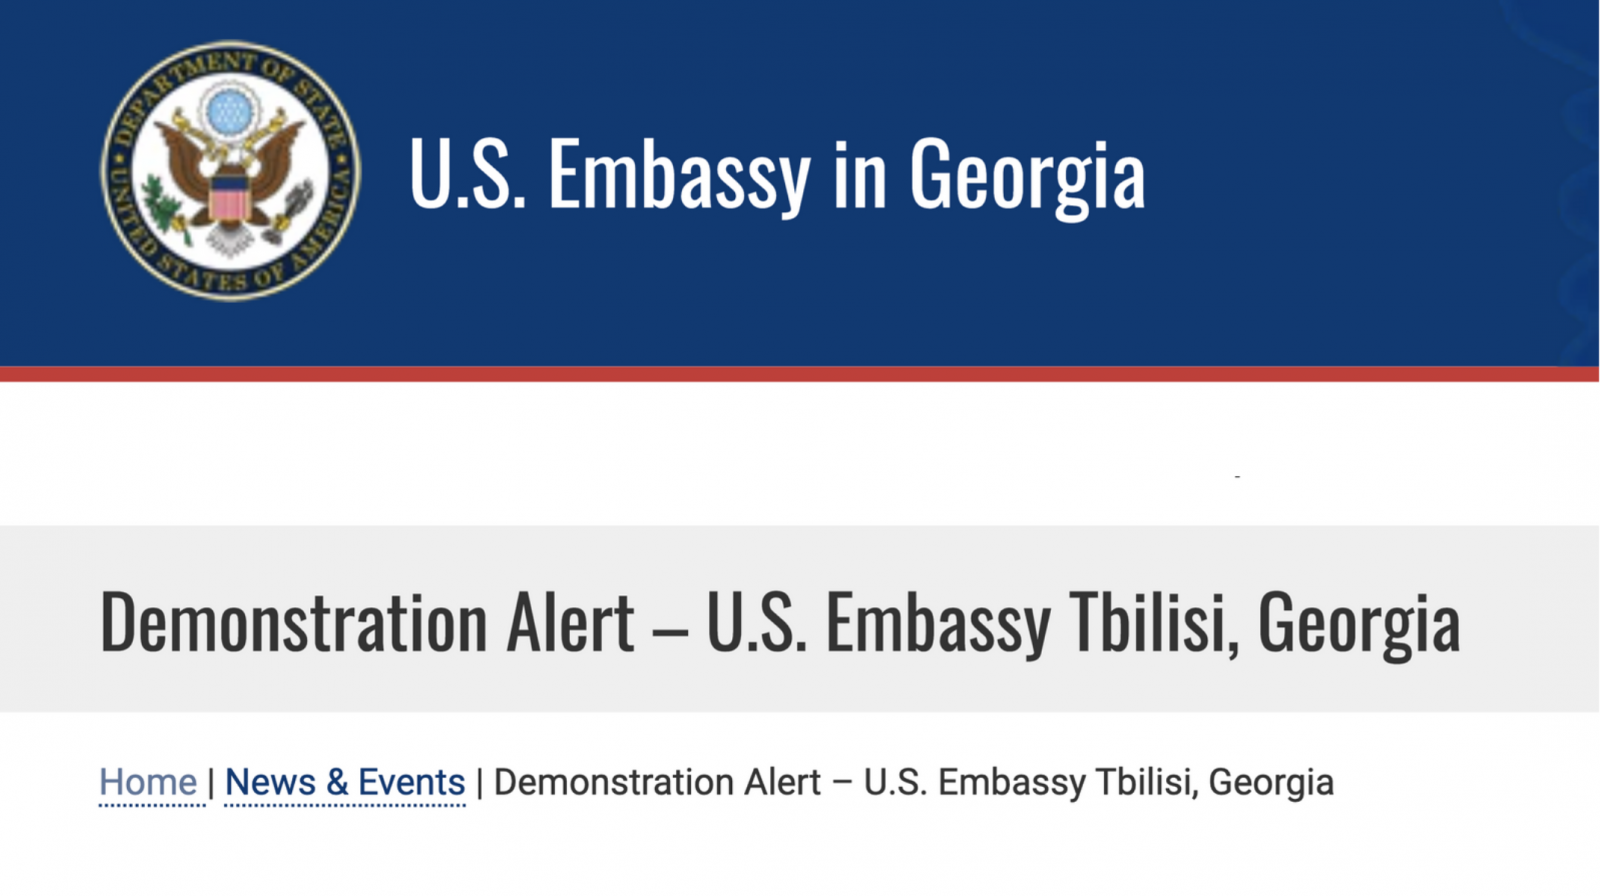 The U.S. Embassy Tbilisi Issues a Demonstration Alert